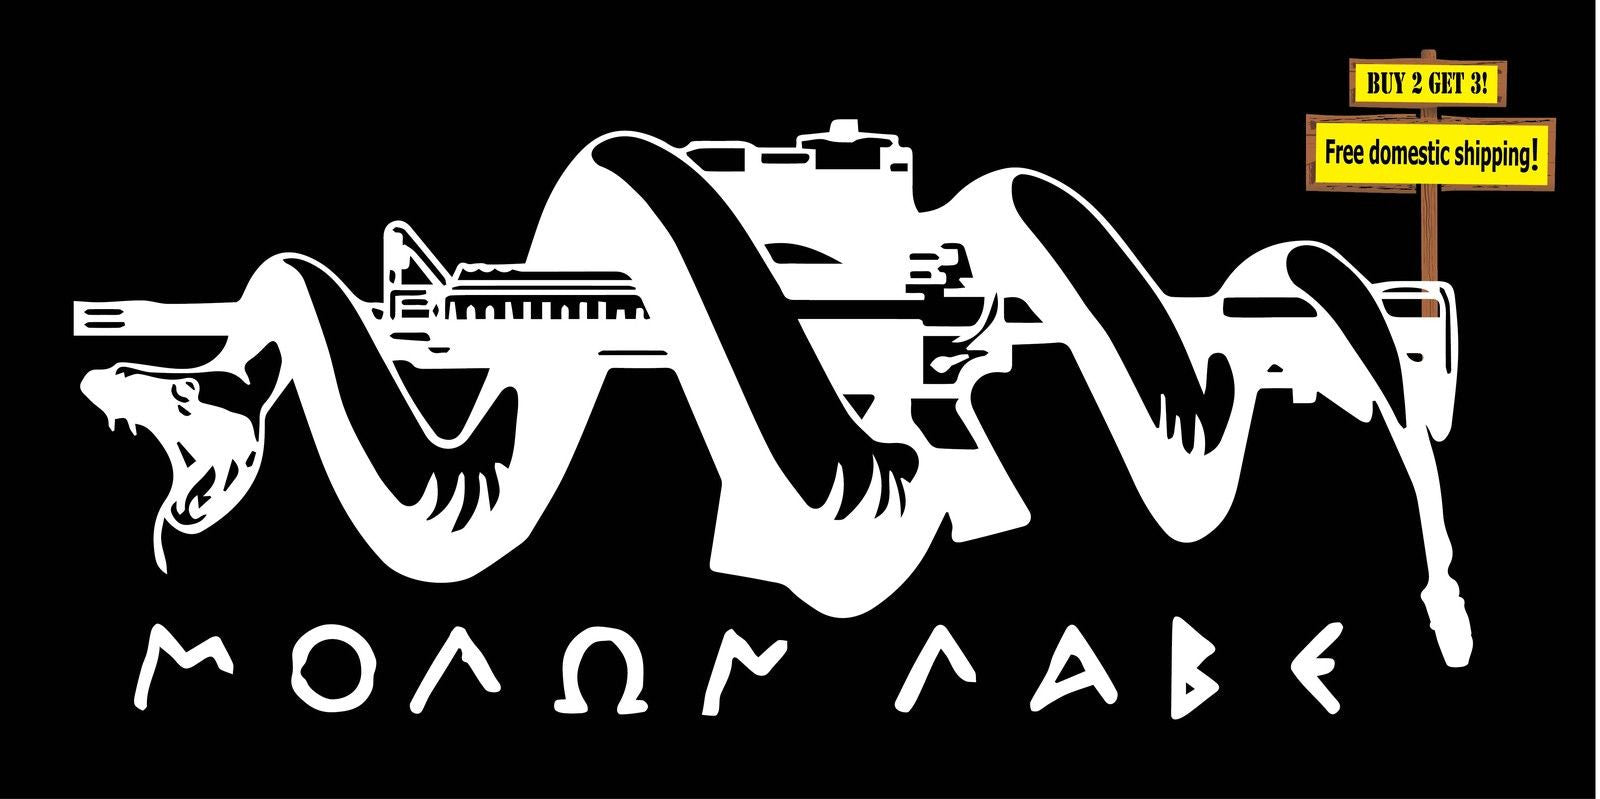 Banksy panda with guns sticker truck stickers logos and vinyl - Molon Labe With Snake Vinyl Decal Sticker 300 Come And Get It Gun Rights Ar15 Buy 2 Get 3 Choose Color